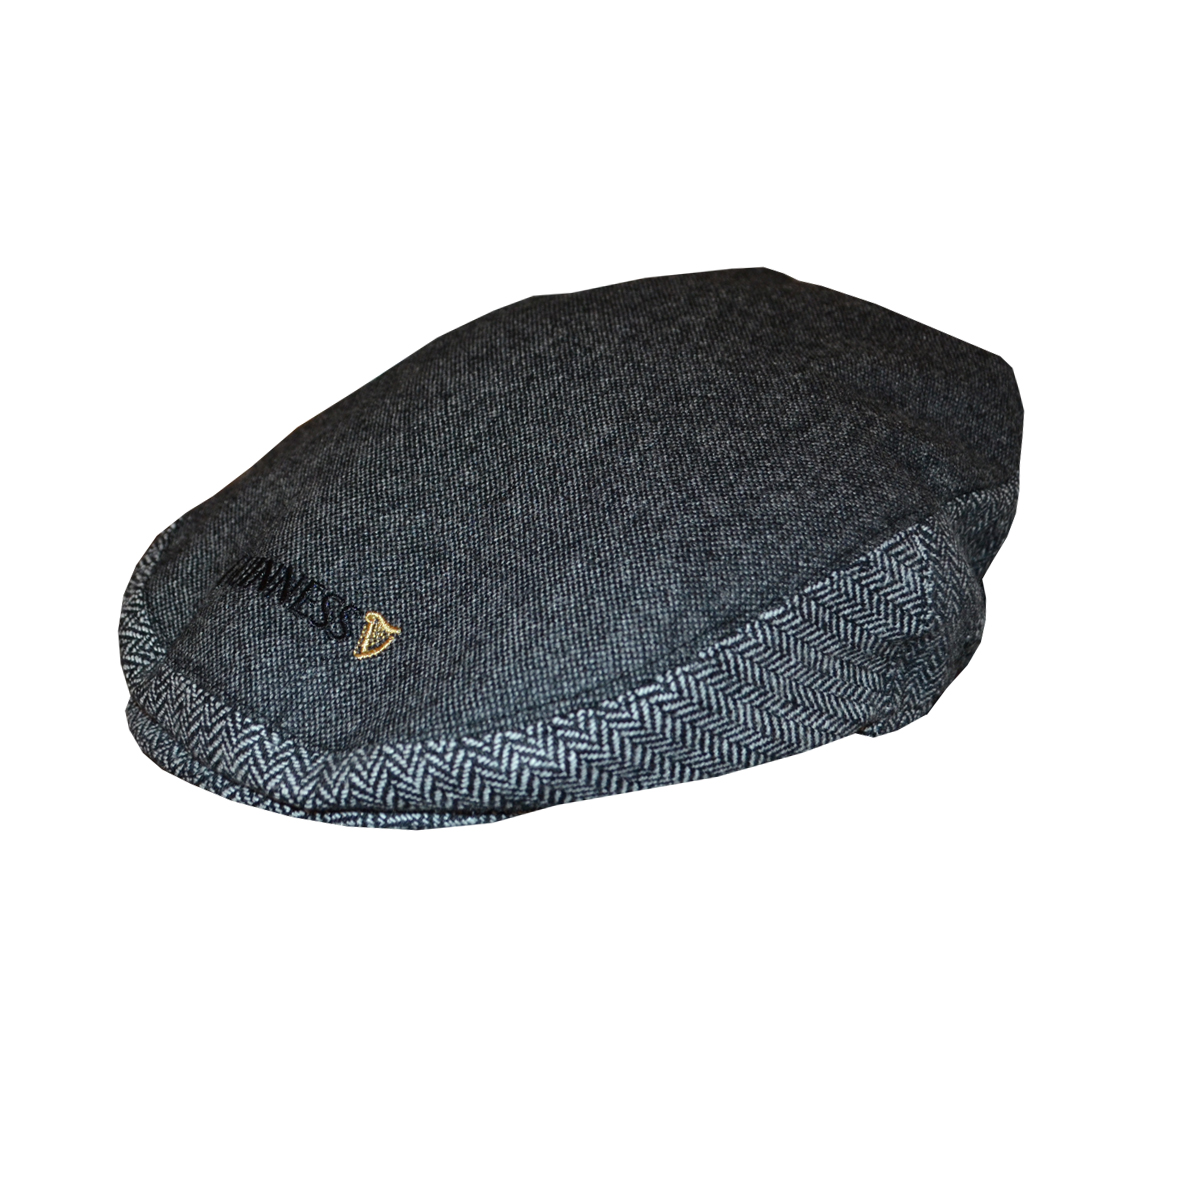 Guinness Grey Tweed Flat Cap (Medium & Large) £16.99